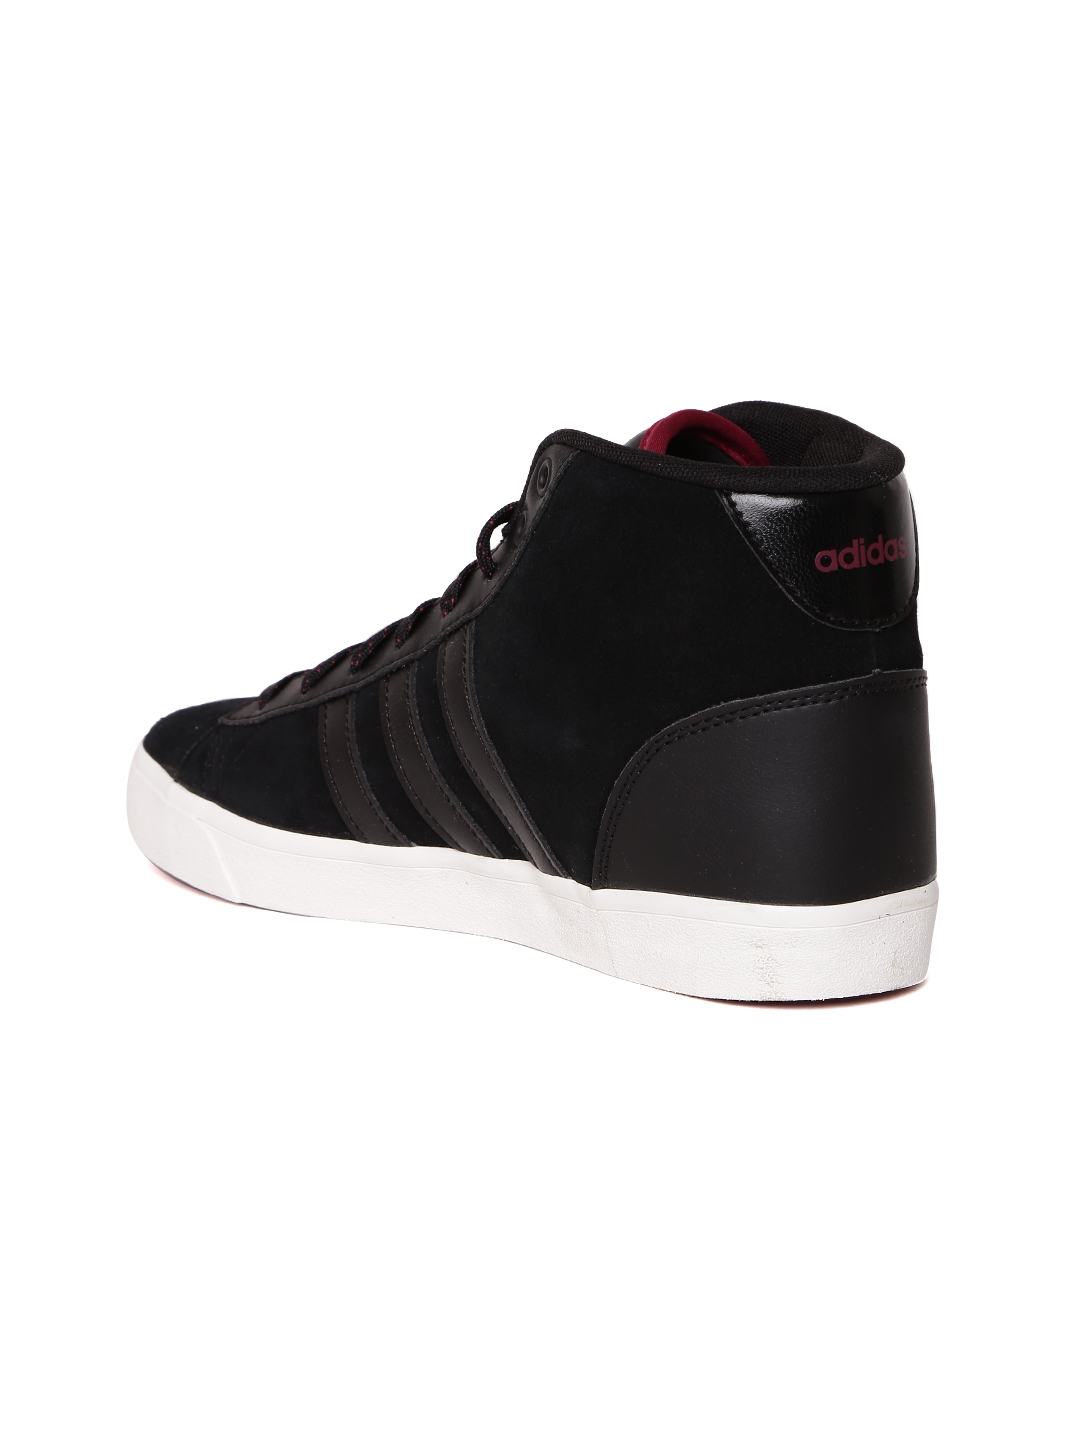 best sneakers d975d f9a8d ADIDAS NEO Women Black CloudFoam Daily QT Leather Sneakers